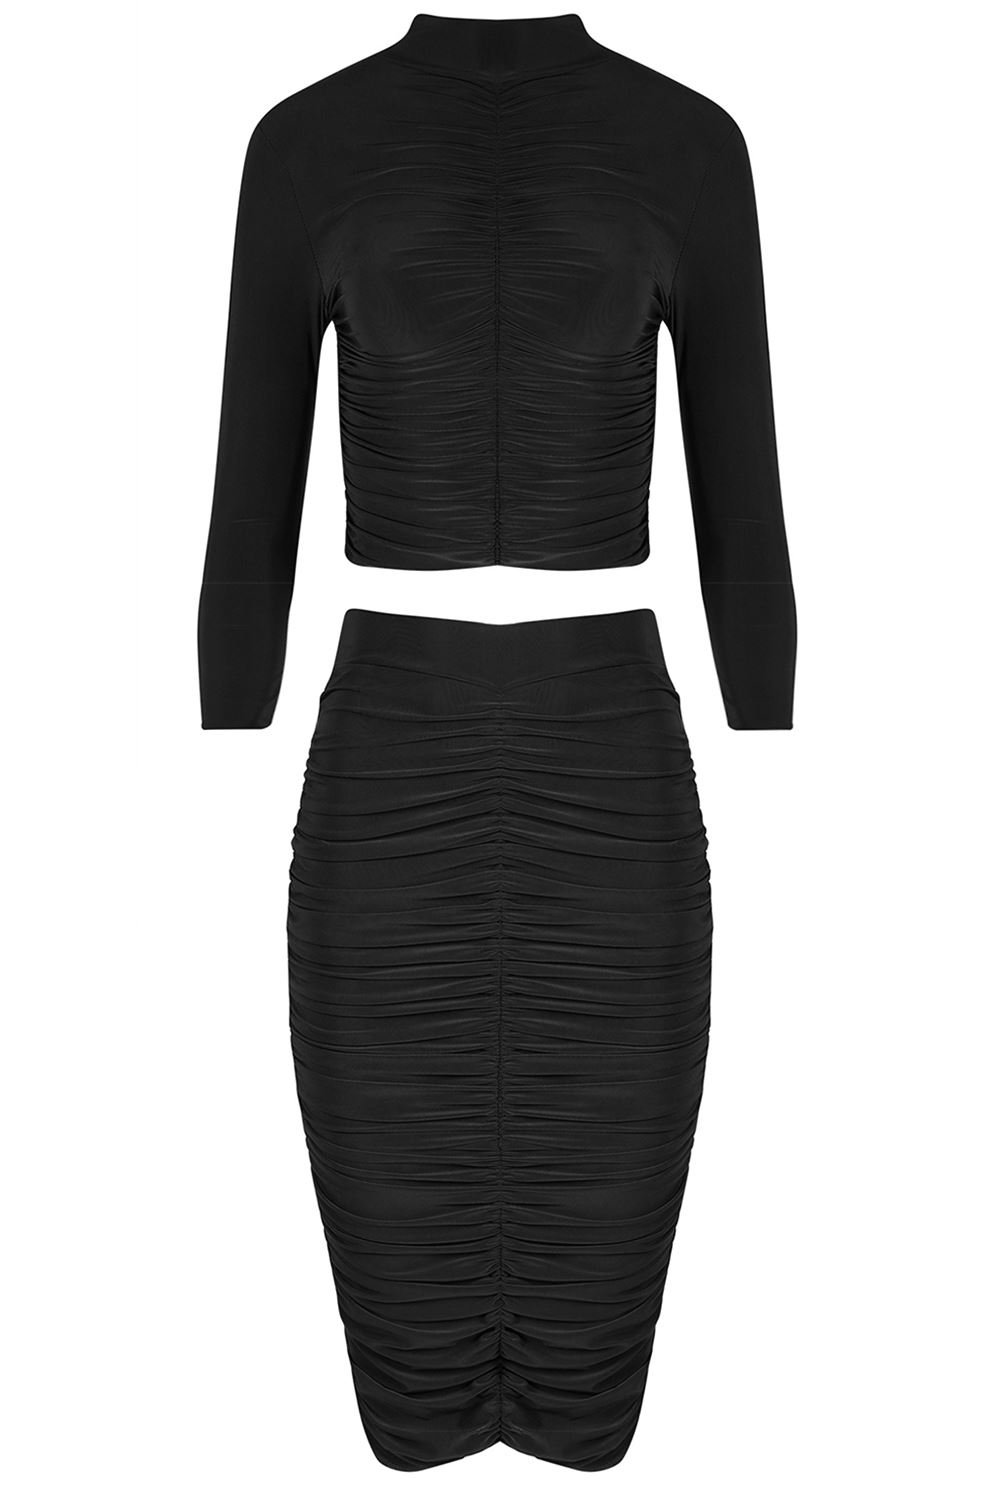 Womens Slinky Polo Neck Crop Top Ladies Two Piece Co Ordinate Set /& Ruched Skirt